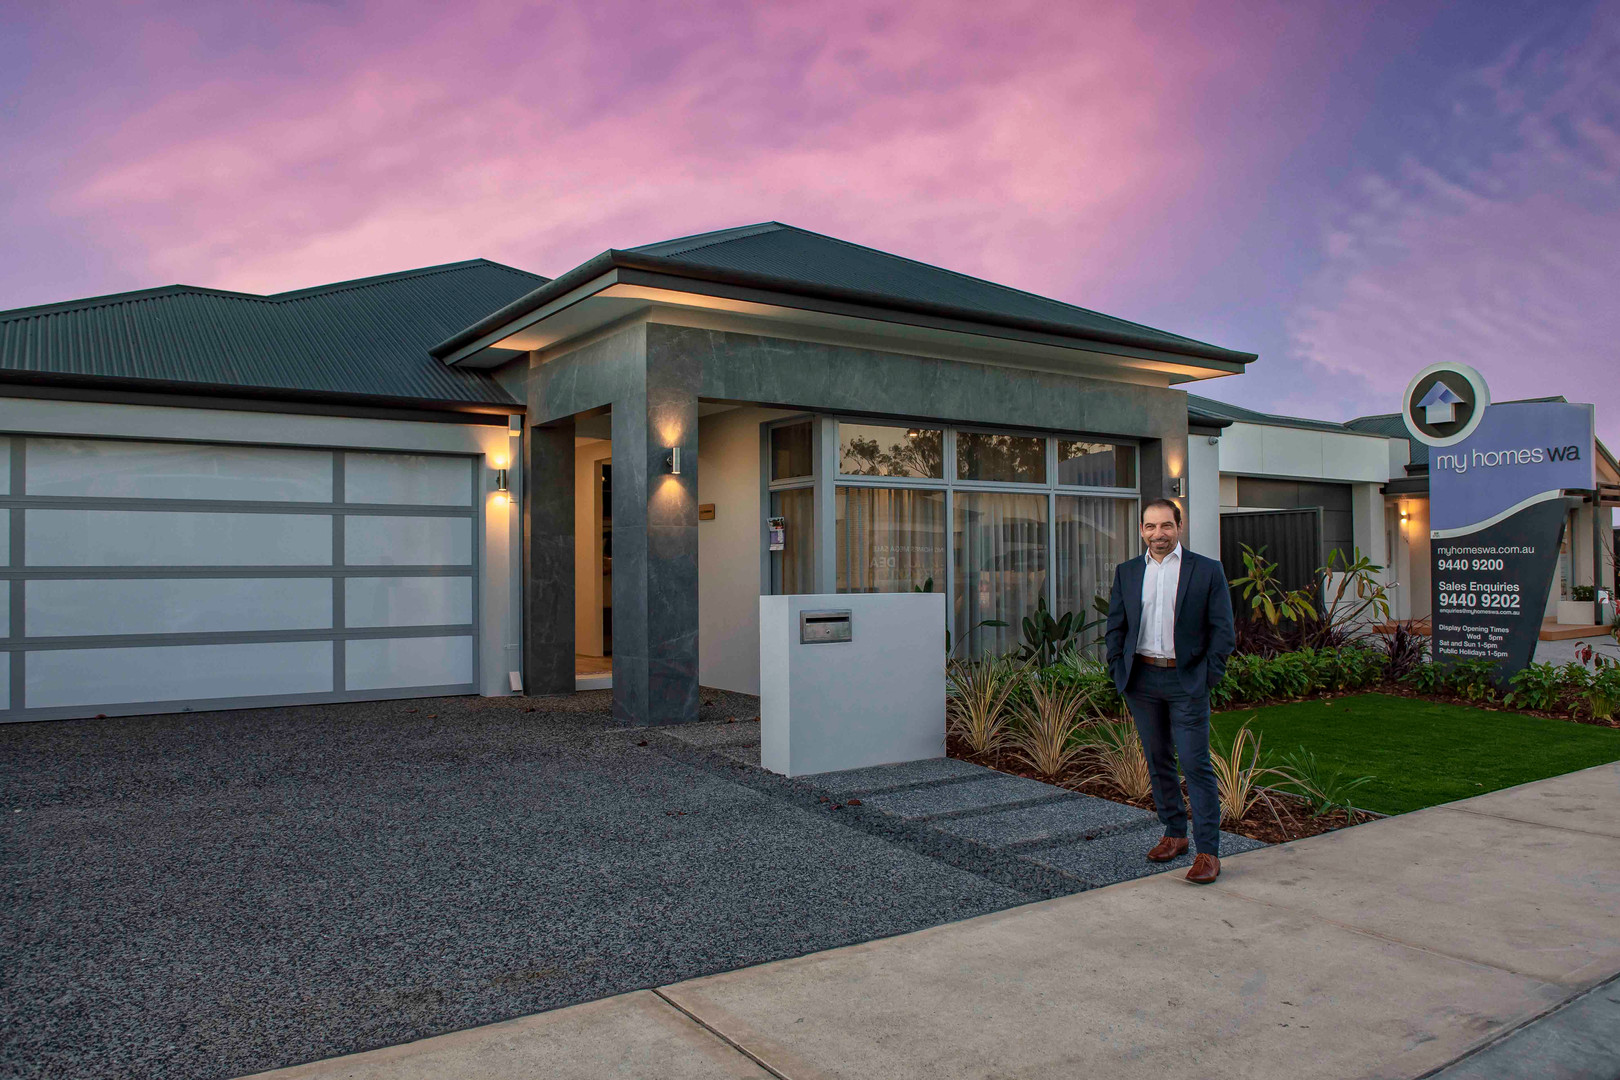 Perth commercial photographer My Homes WA